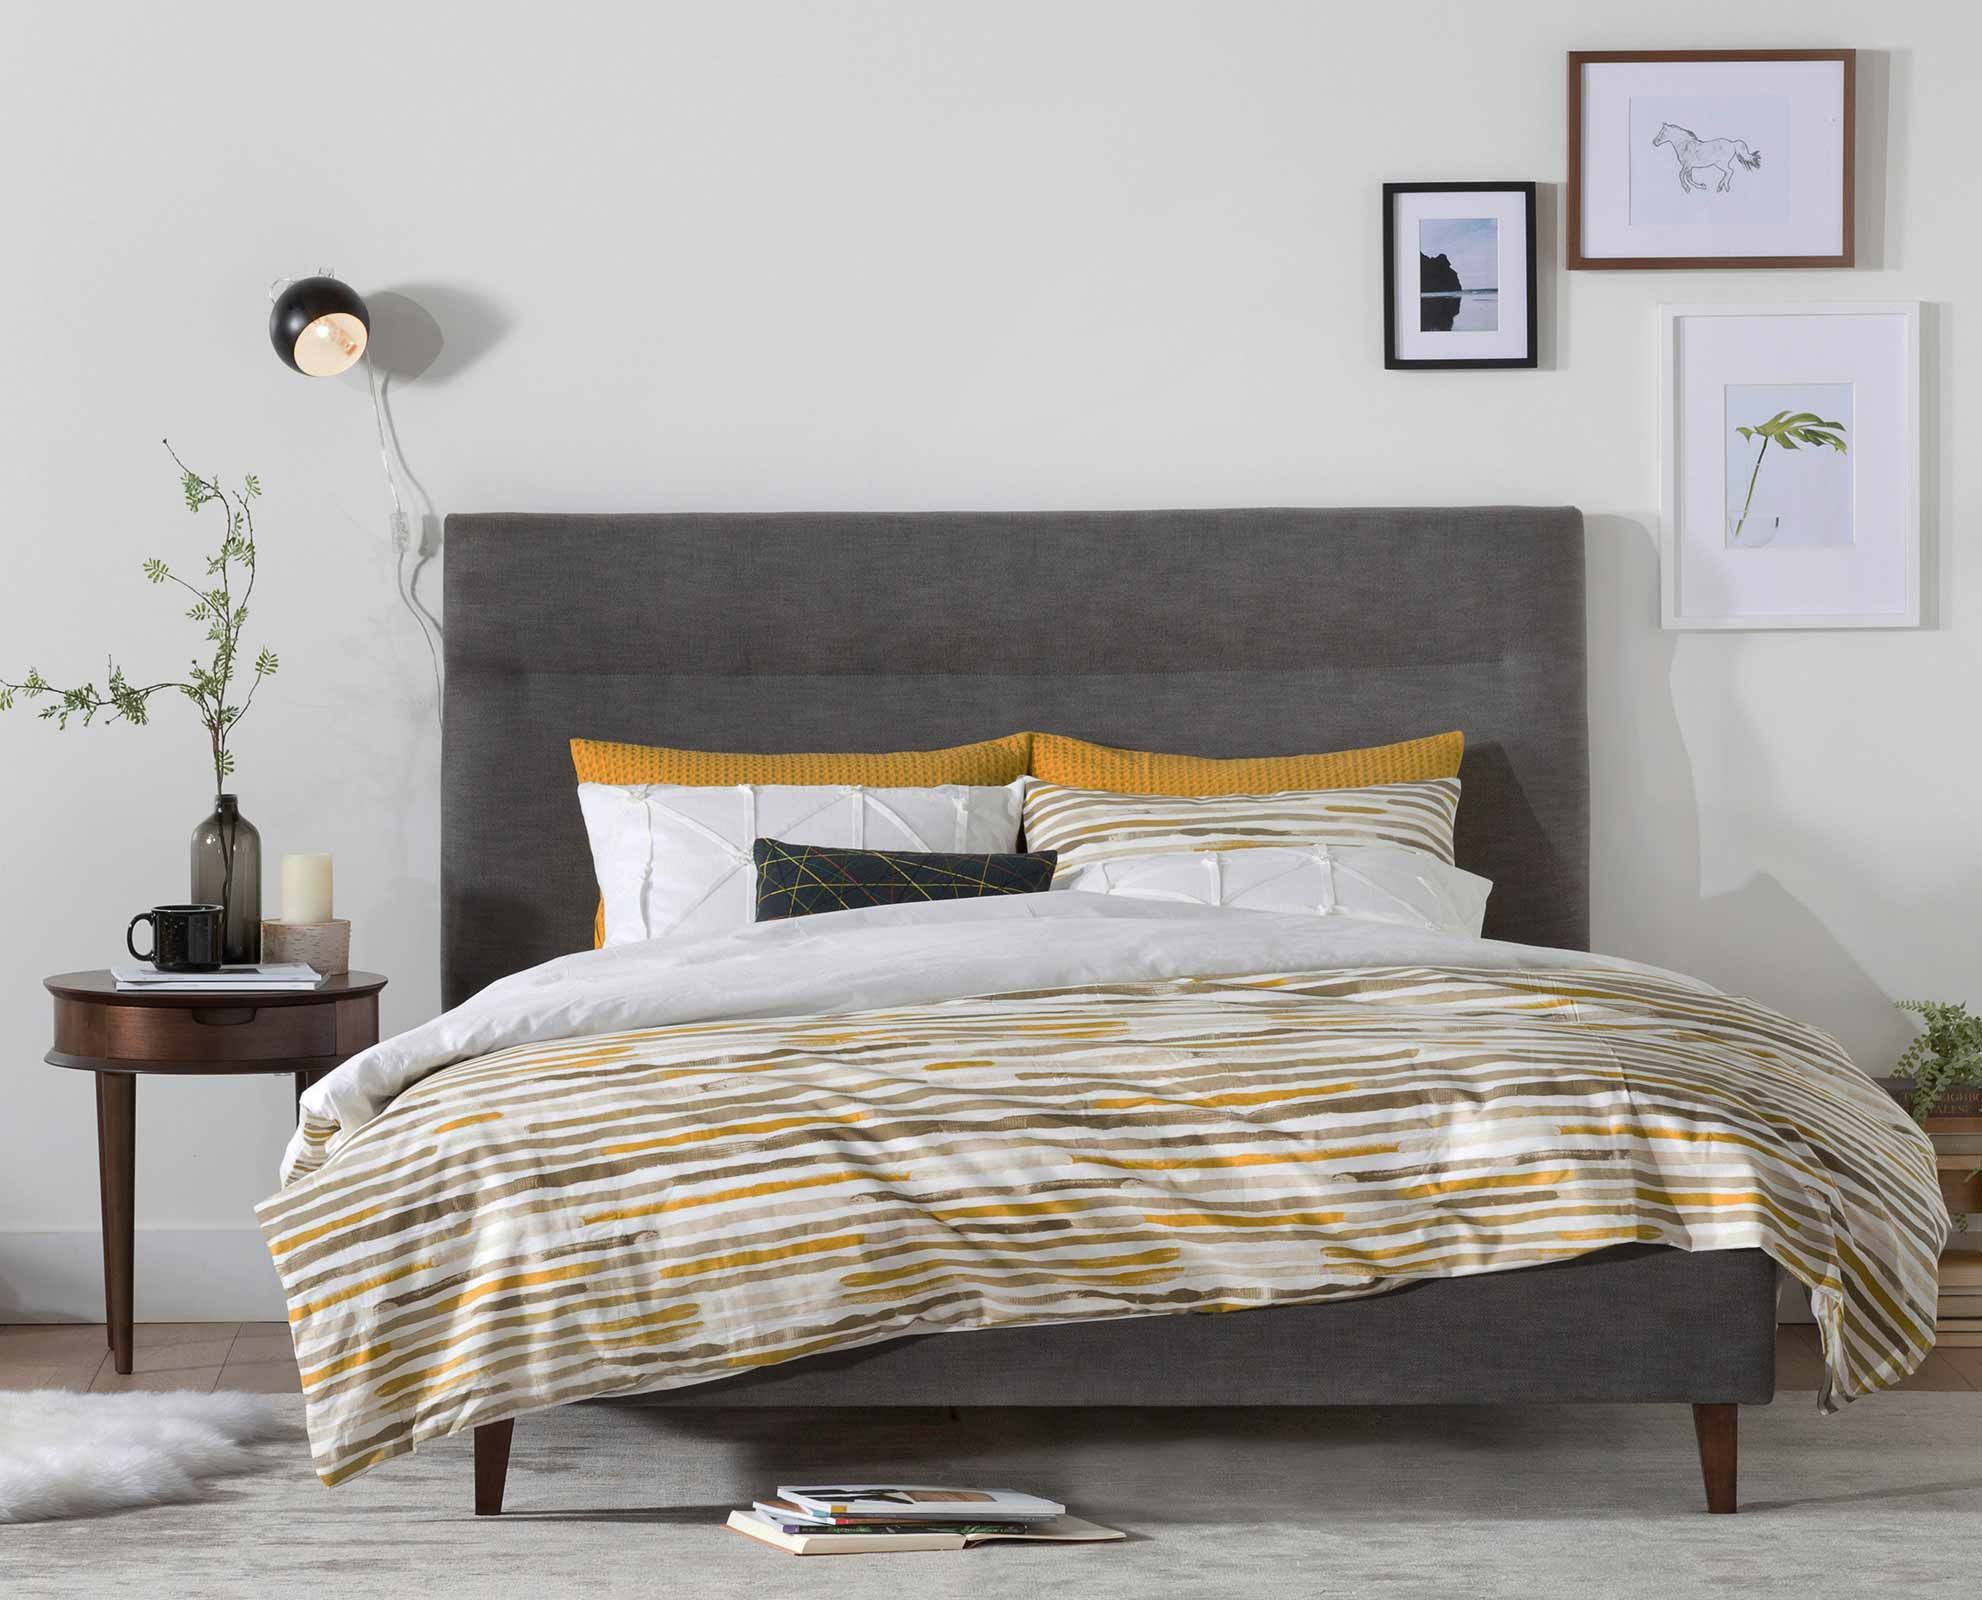 Curate A Modern Bedroom With The Tambur Bed Tall Headboard And Tapered Legs Inspire Visions Of Best Design Age Featuring Platform Style Frame